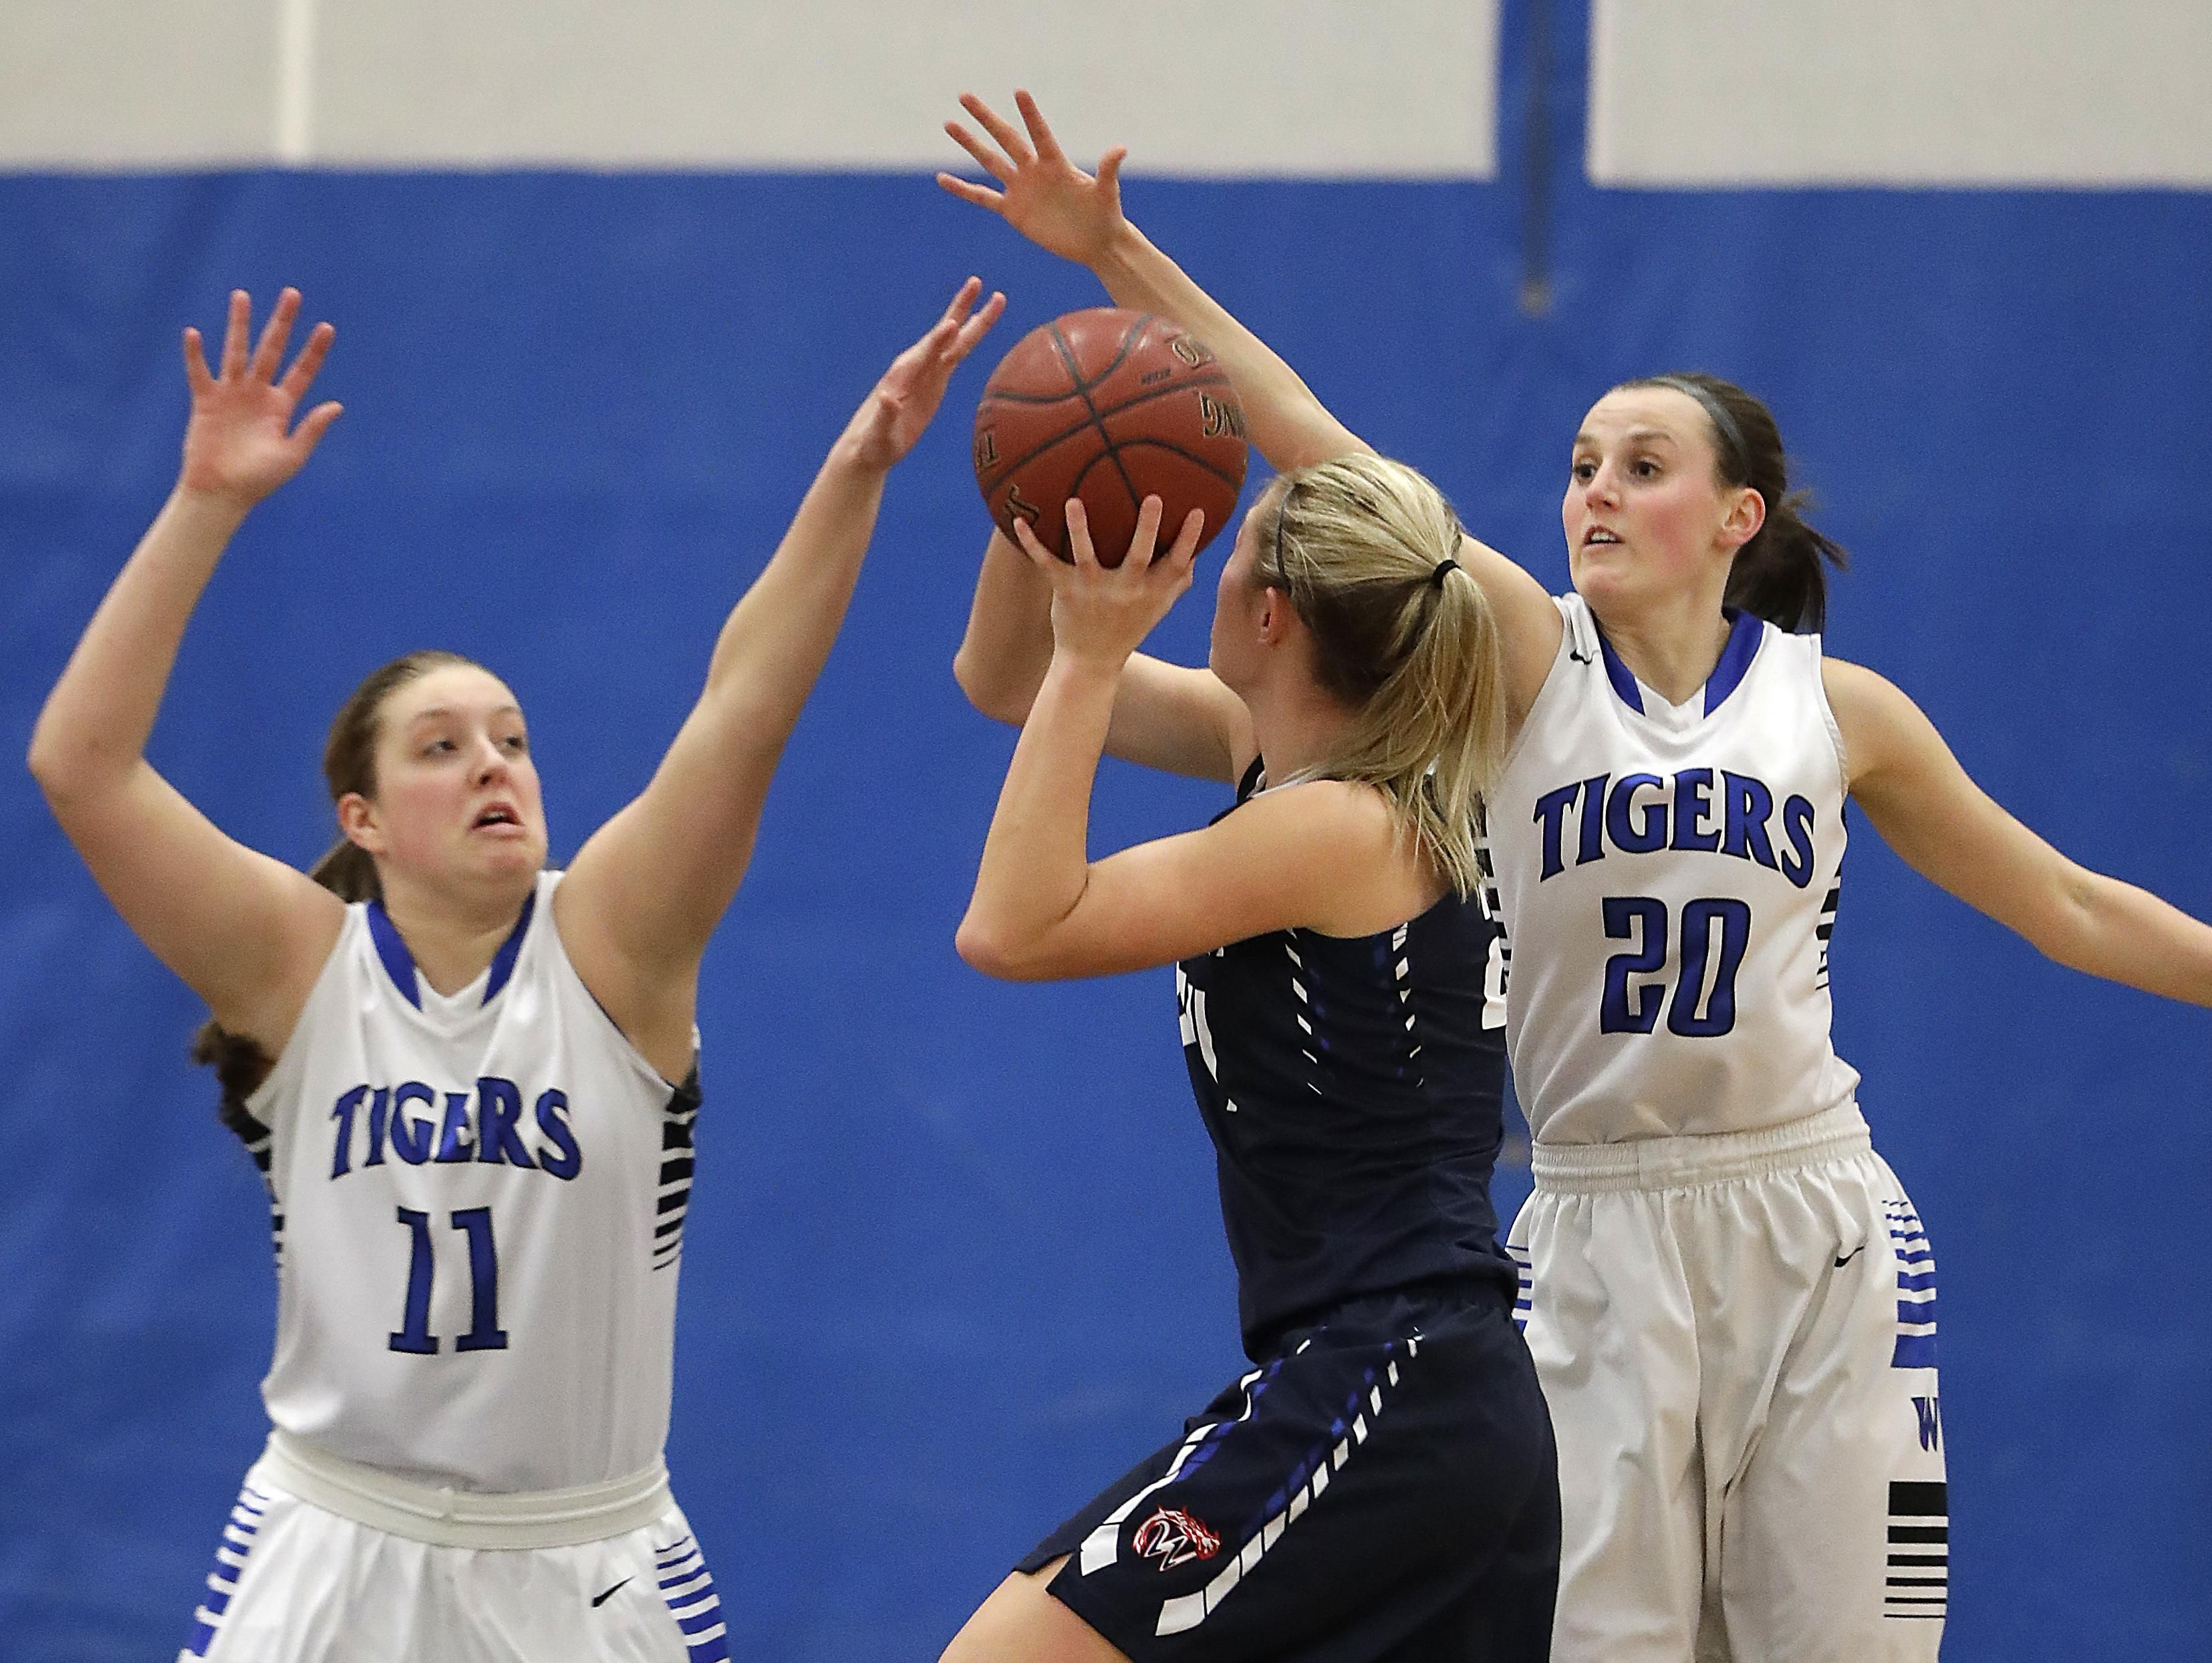 Wrightstown defenders Taylor Guns and Danielle Nennig converge to stop Waupaca's Victoria Nowak at Wrightstown on Tuesday. The Tigers clinched the NEC title with the win. See more photos from the game at greenbaypressgazette.com.